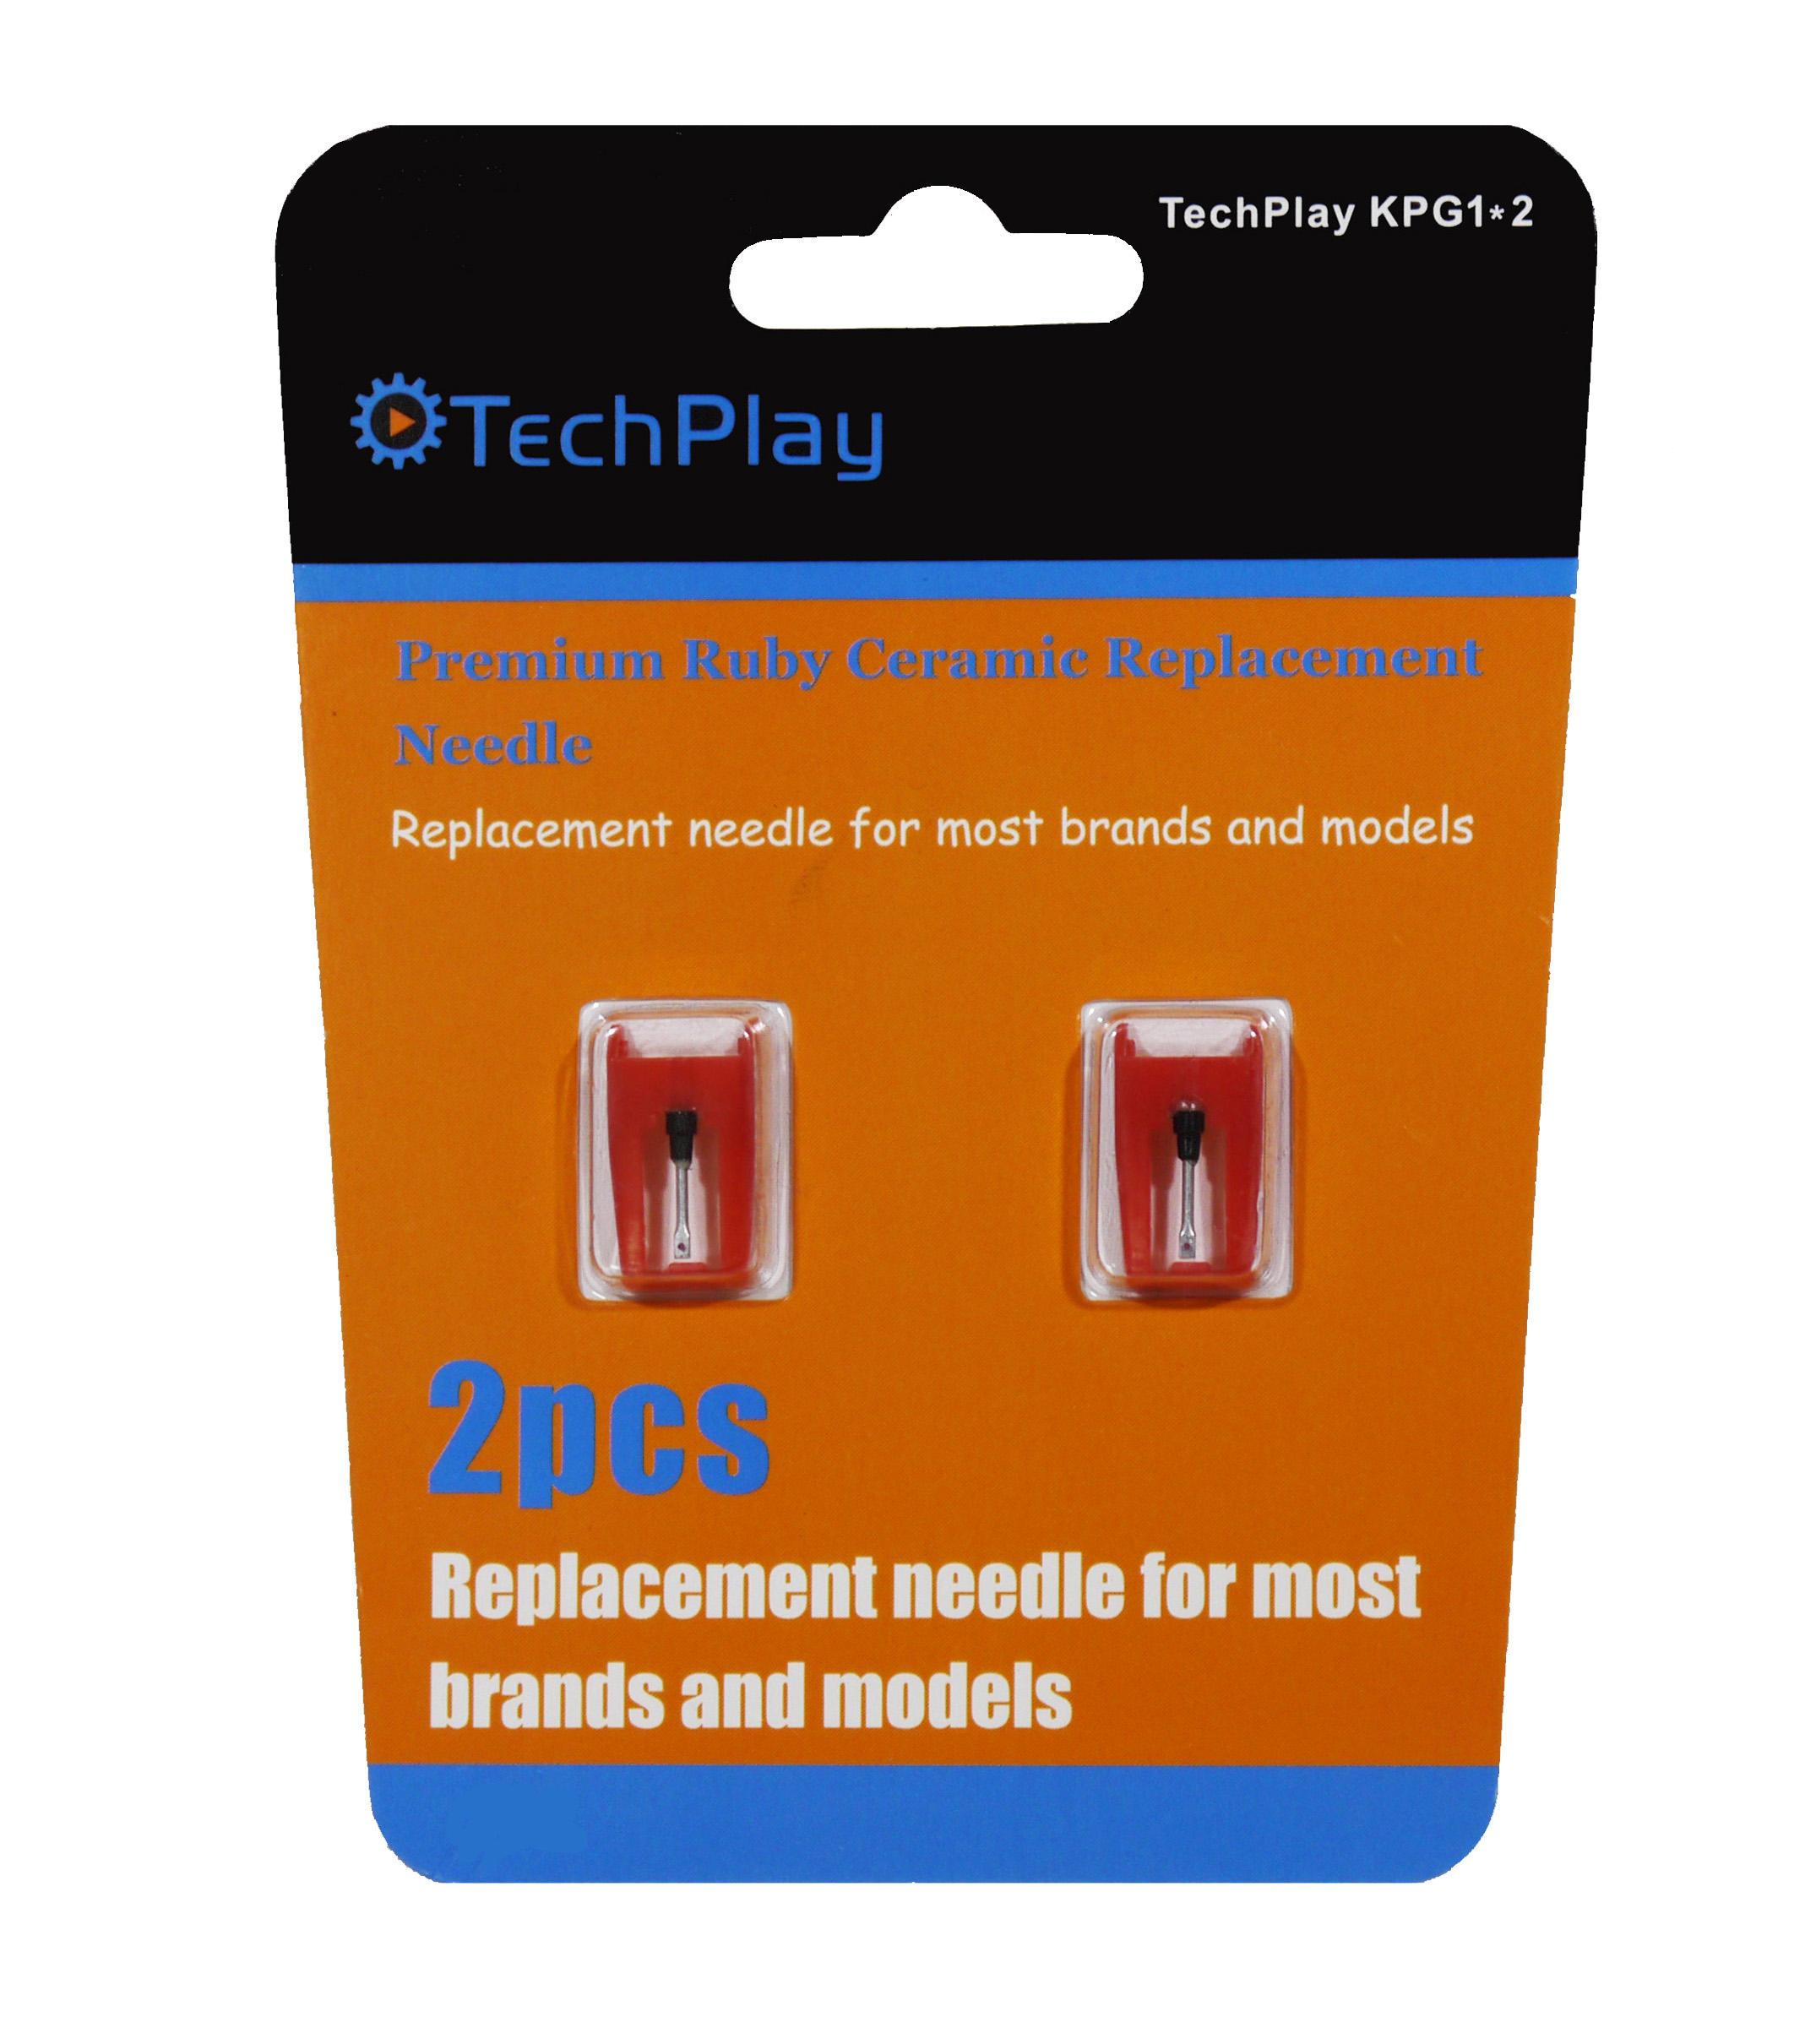 KPG1*2 Pack of 2 Ruby needels for turntable